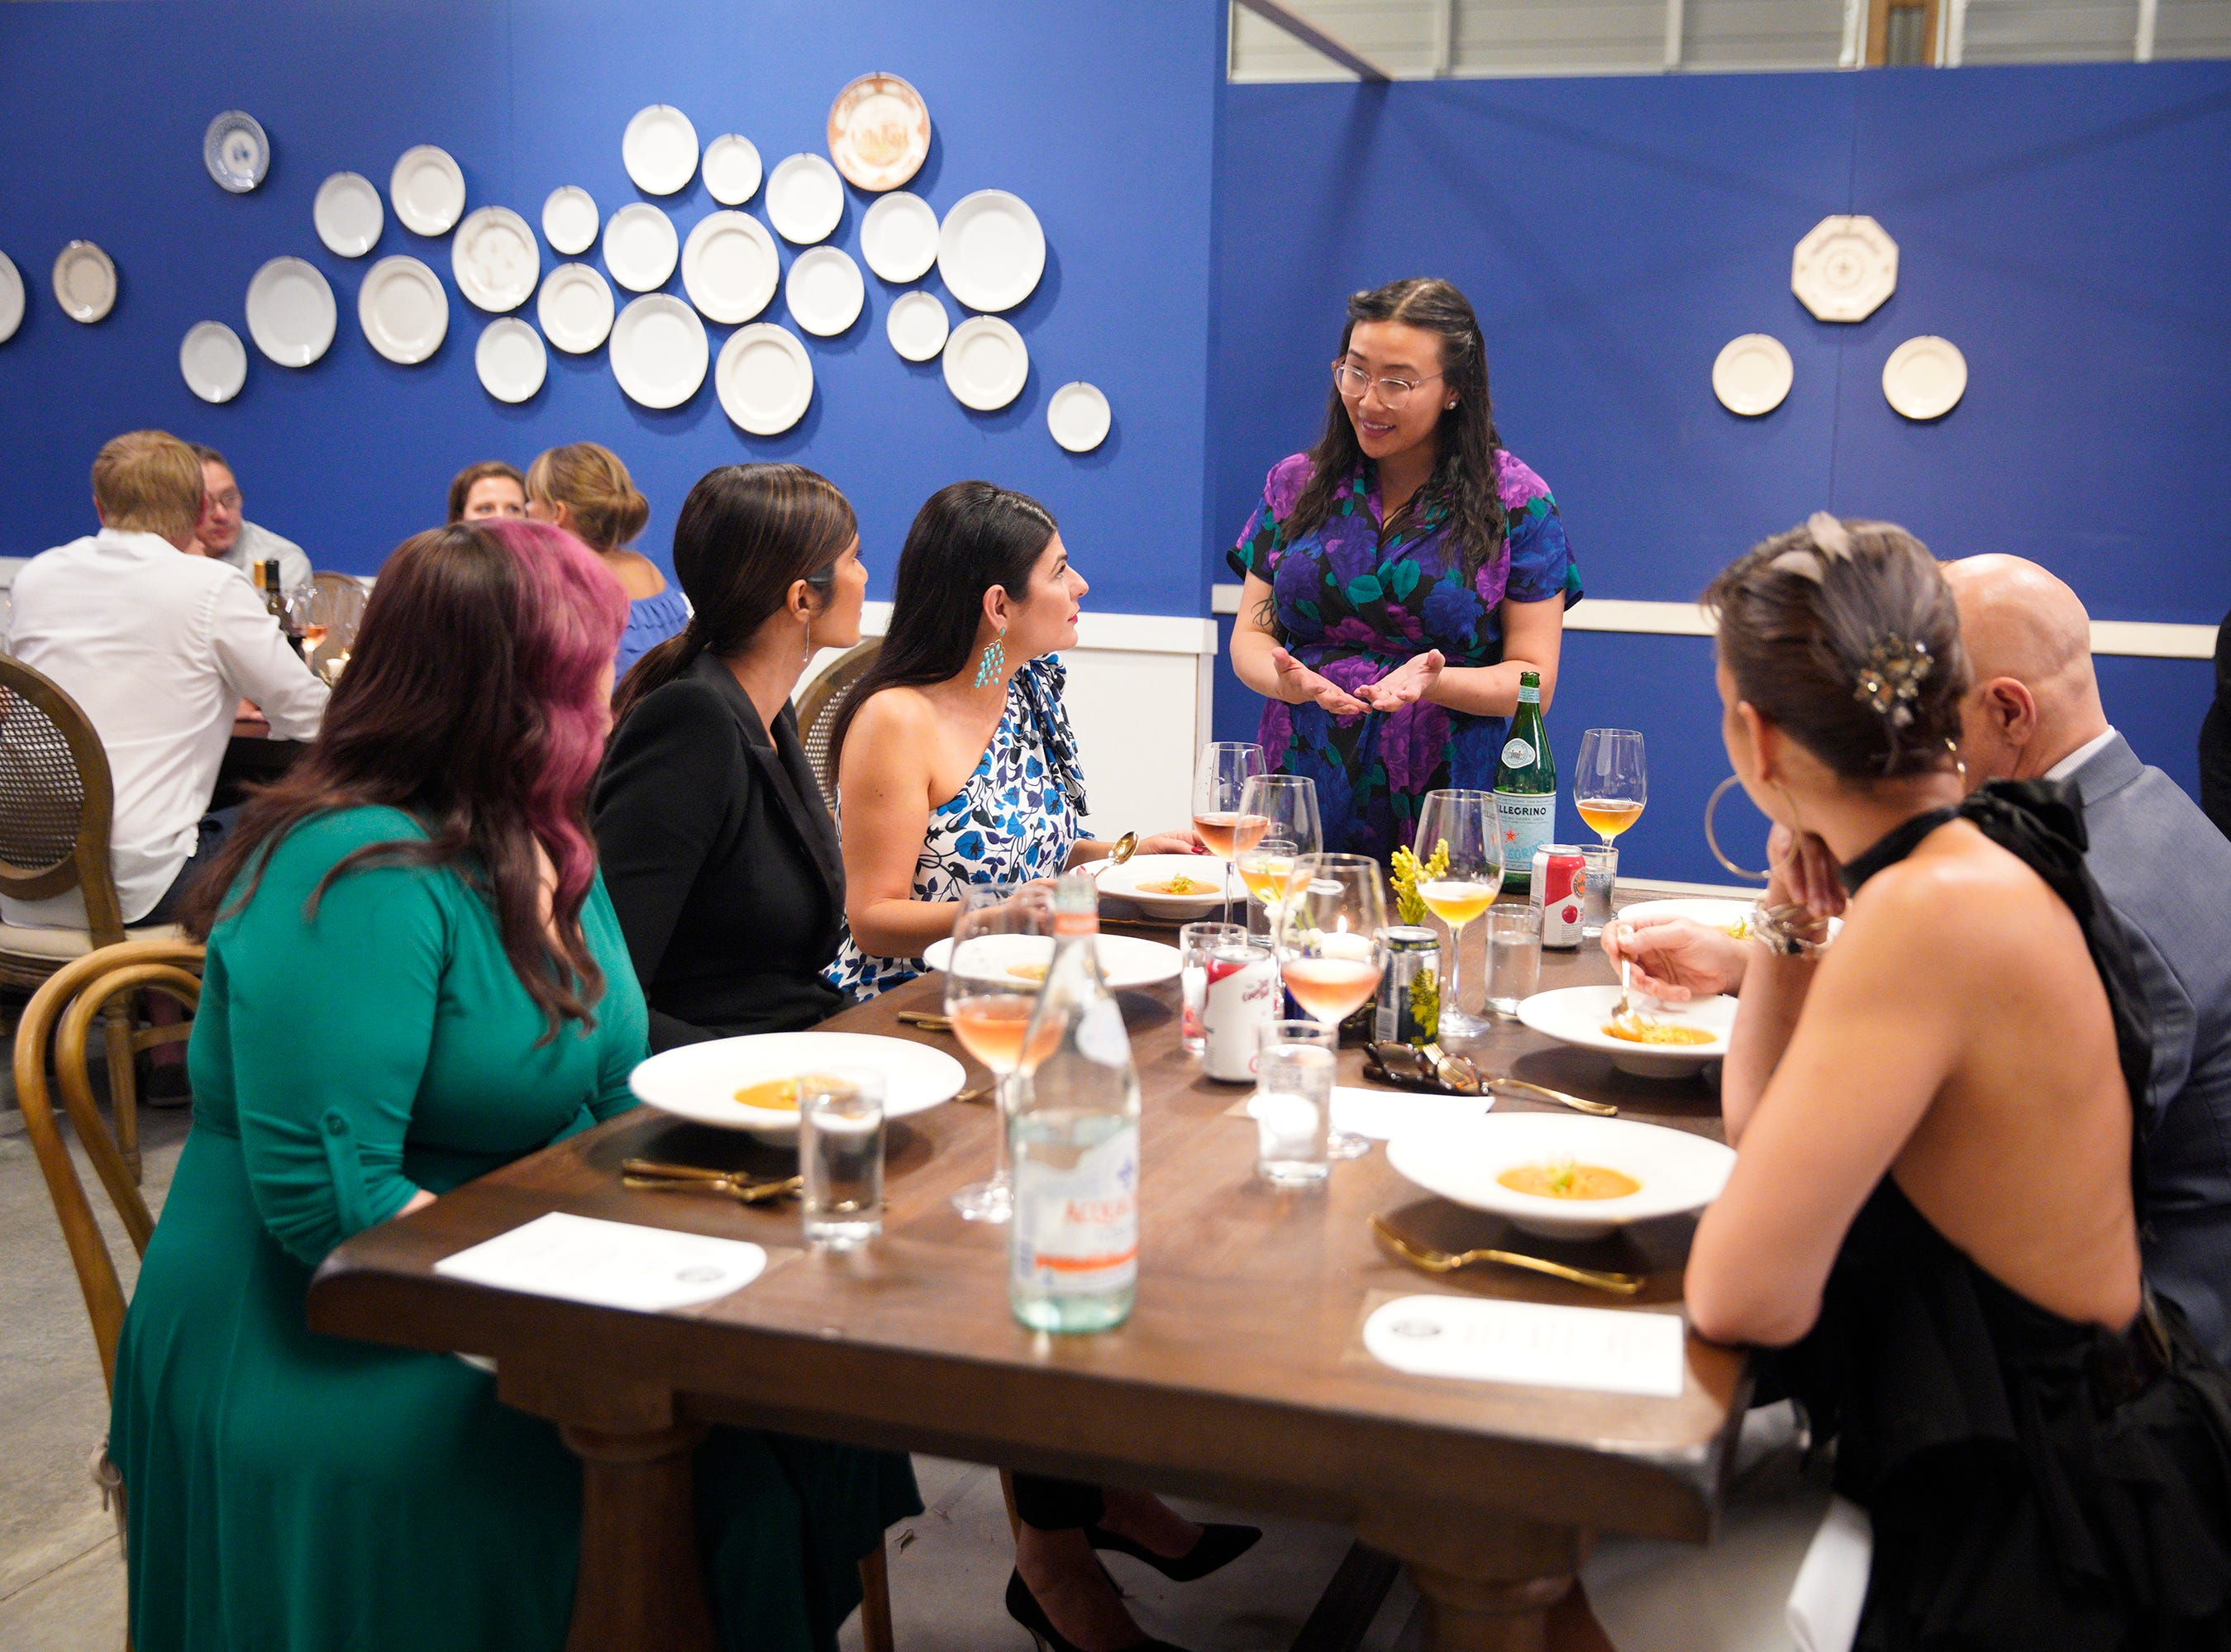 """(From left to right): Padma Lakshmi, Nilou Motamed and Nini Nguyen on episode 5 of Bravo's """"Top Chef"""" Kentucky."""